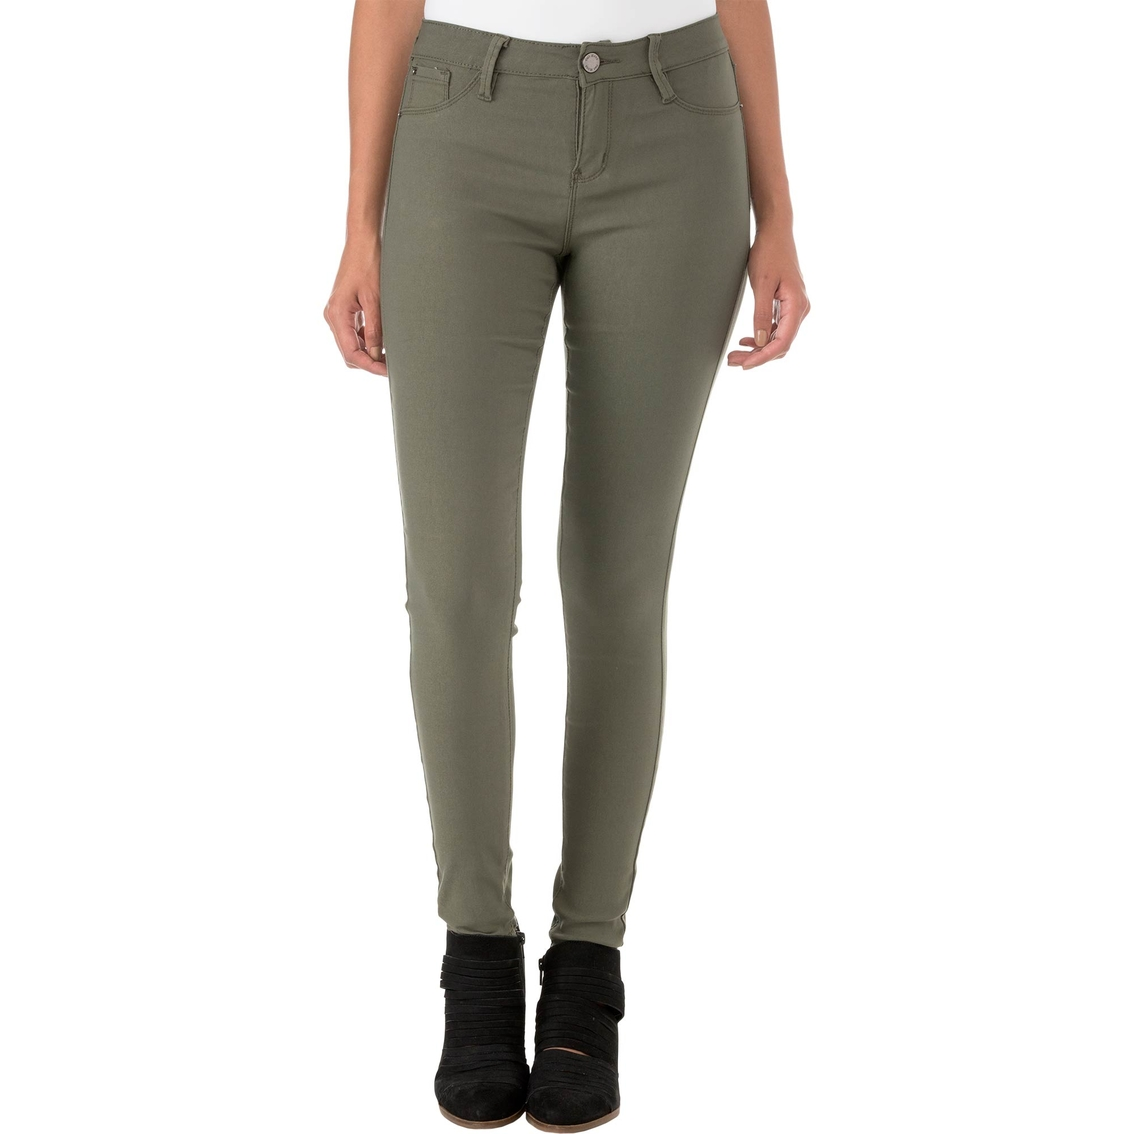 54924f5c22015 Ymi Hyperstretch Skinny Jeans | Jeans | Apparel | Shop The Exchange